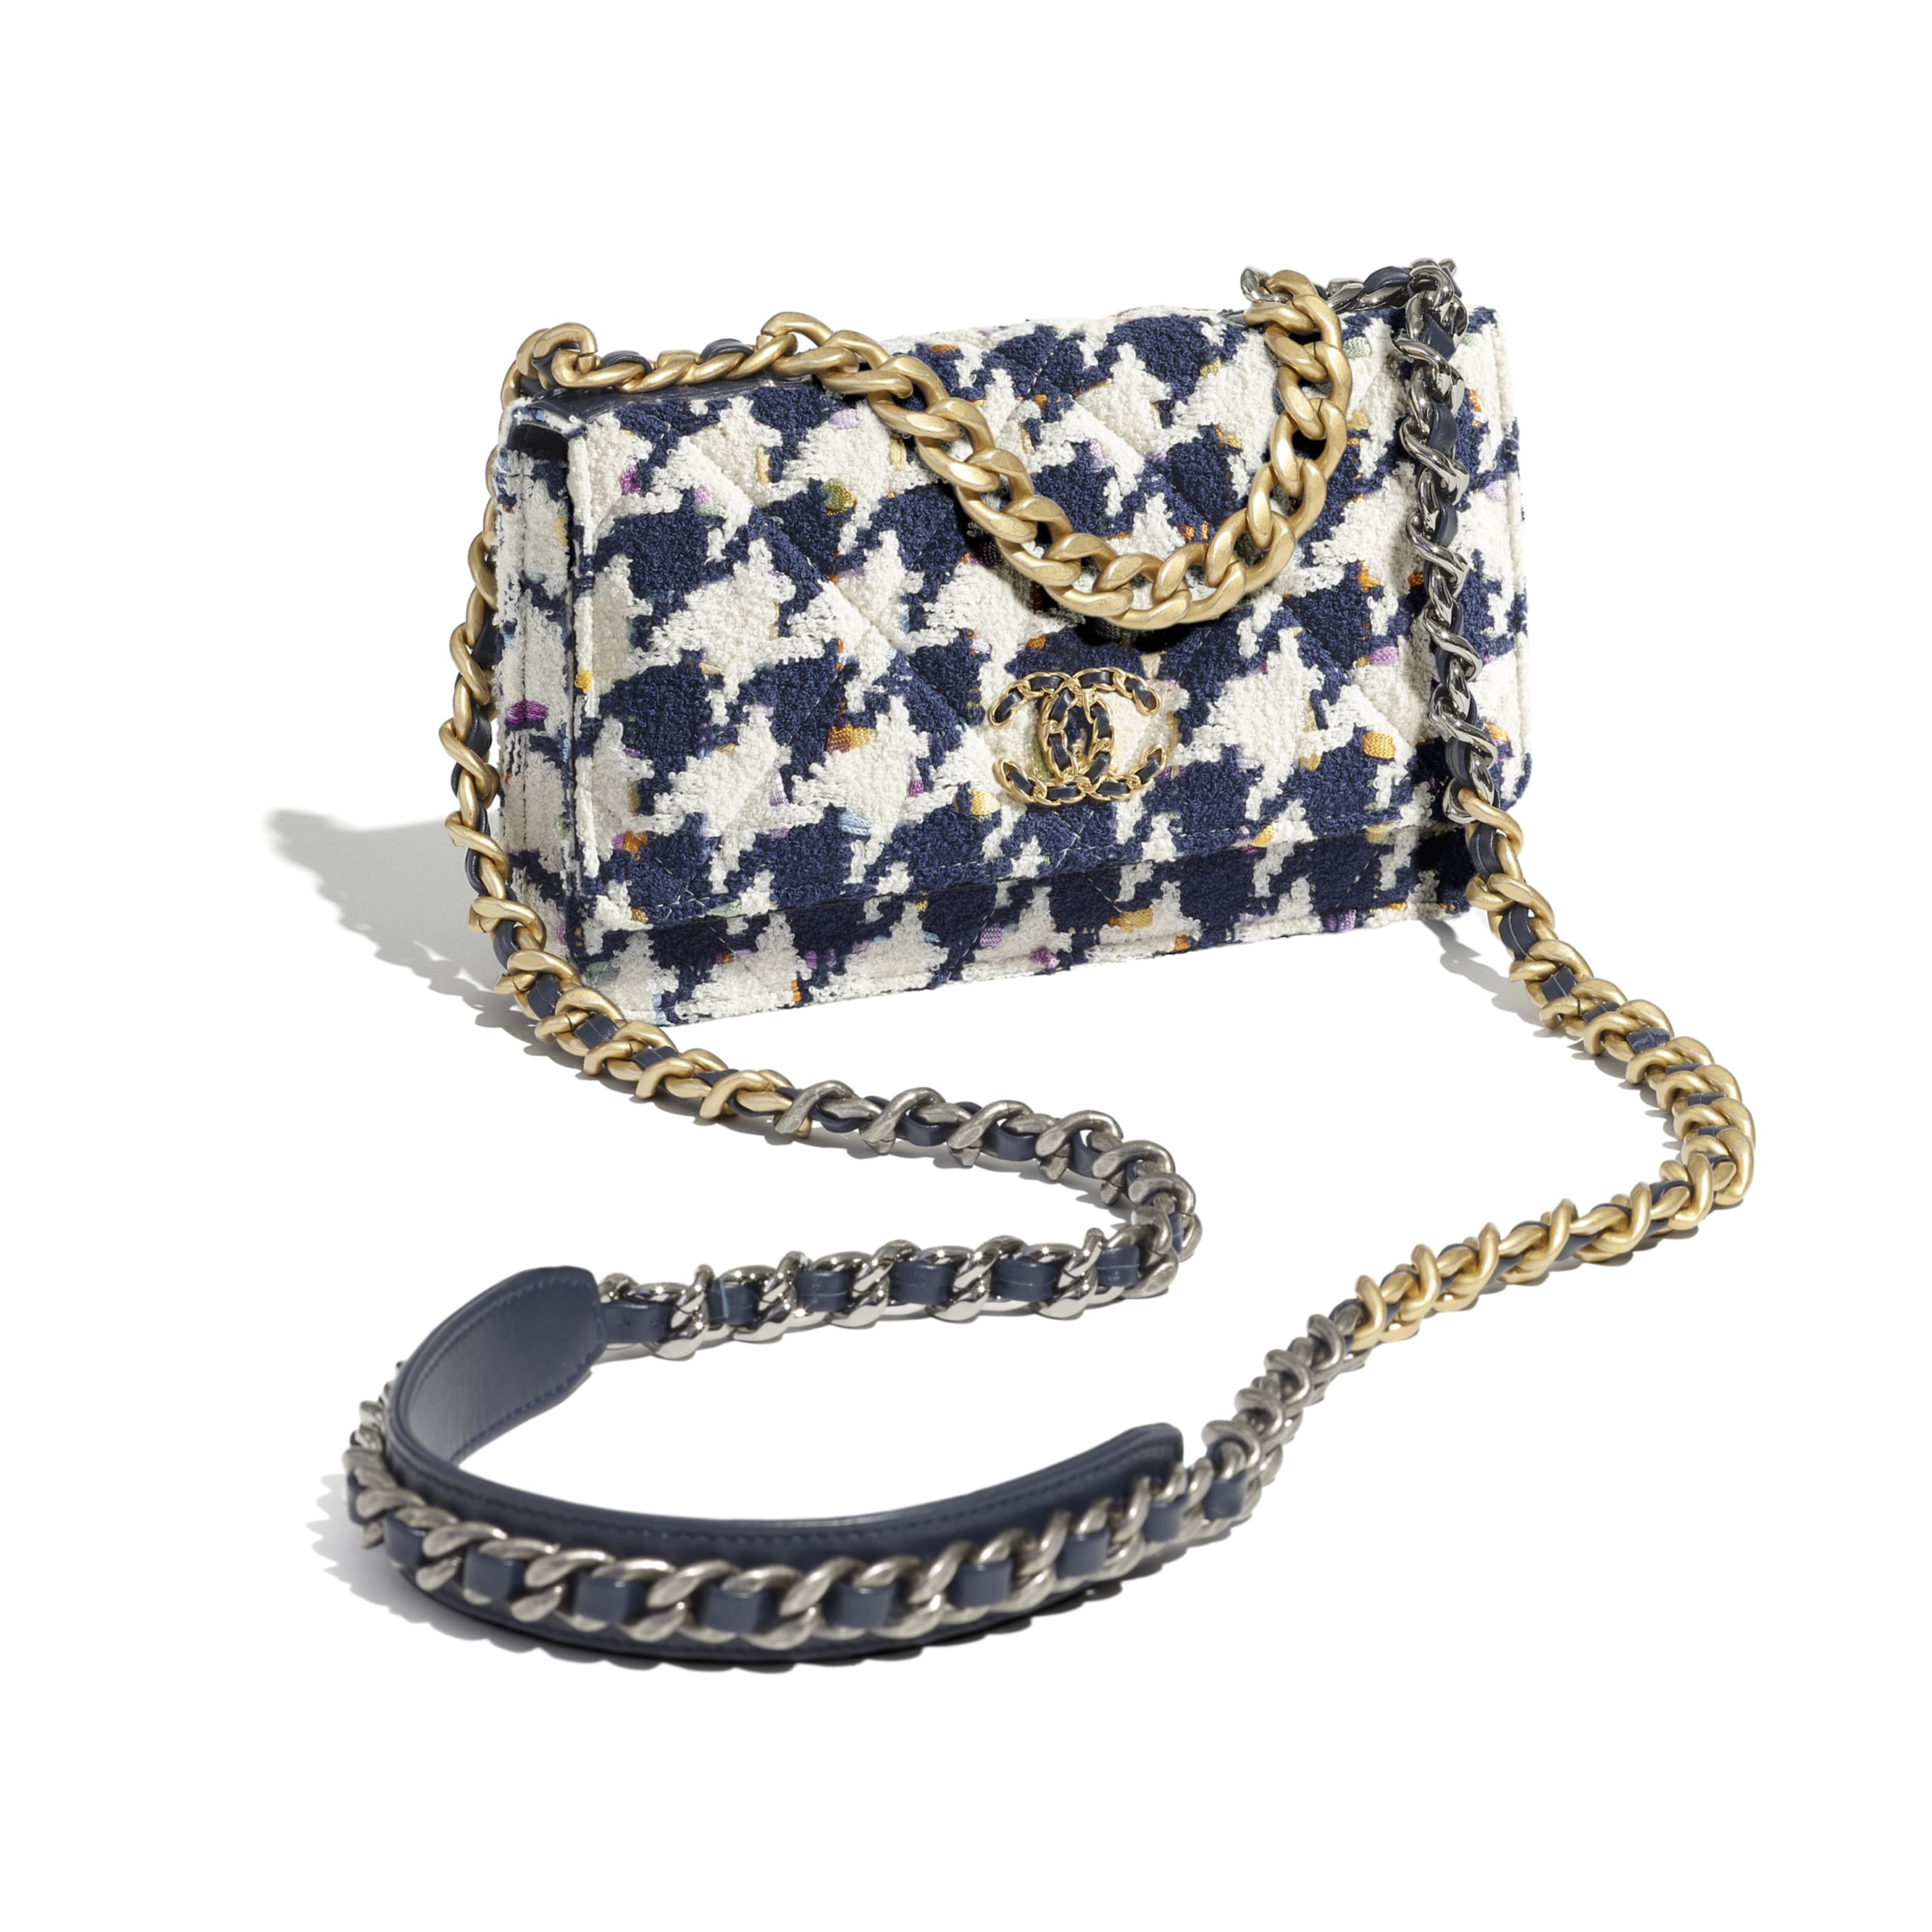 CHANEL 19 Wallet on Chain - Ecru, Navy Blue & Multicolour - Tweed, Gold-Tone, Silver-Tone & Ruthenium-Finish Metal - CHANEL - Extra view - see standard sized version